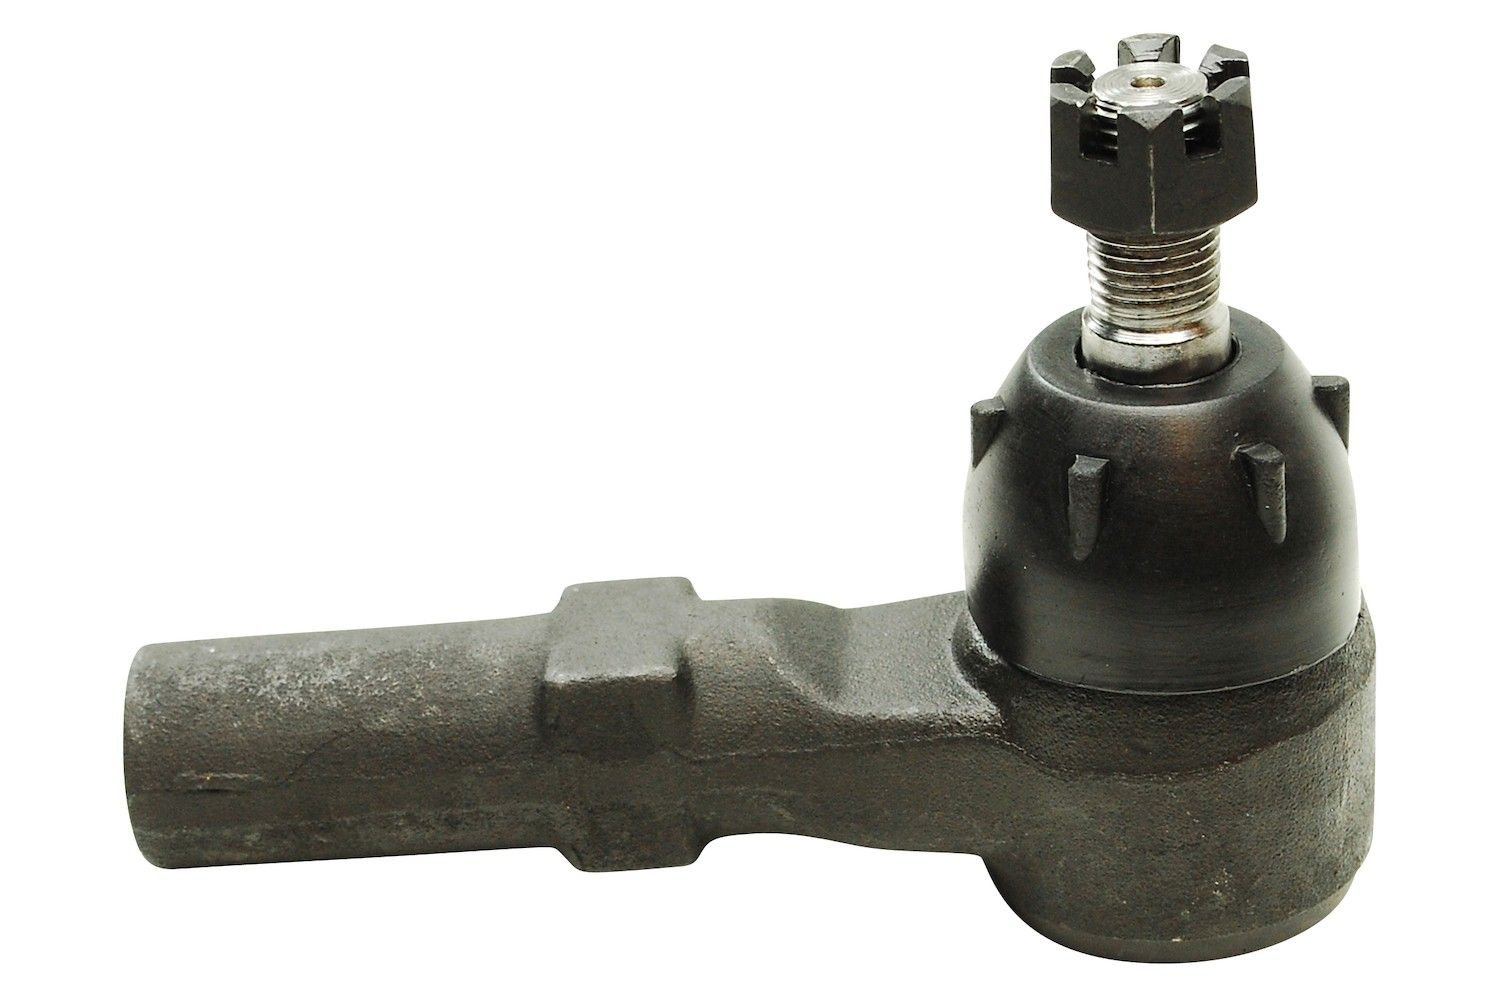 Mazda Protege5 Steering Tie Rod End Replacement Beck Arnley Ctr 2002 Protege Parts Front Outer Mevotech Ges3197rl